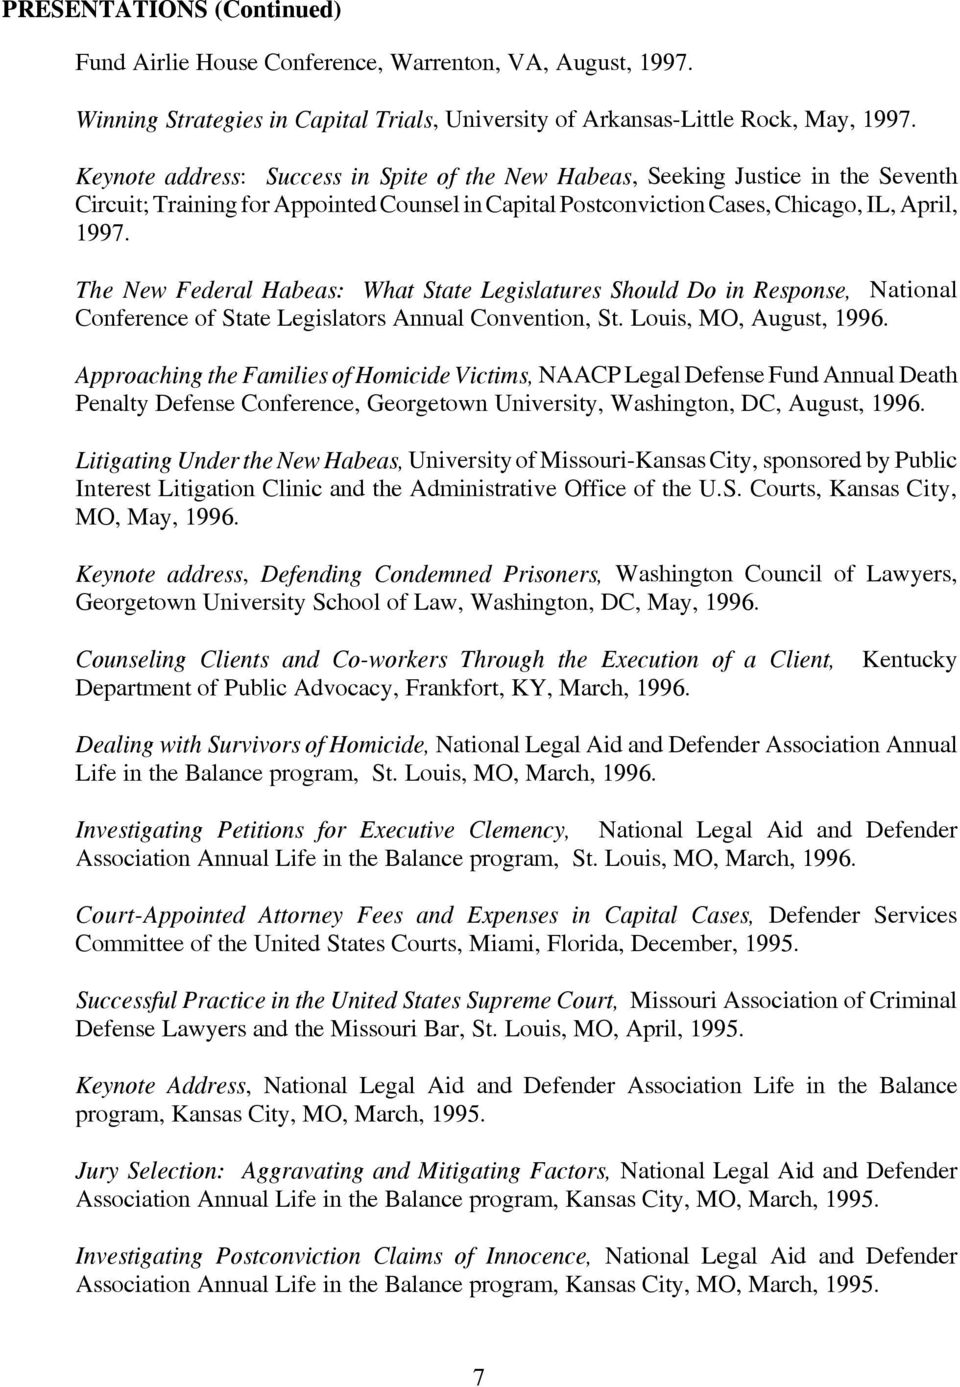 The New Federal Habeas: What State Legislatures Should Do in Response, National Conference of State Legislators Annual Convention, St. Louis, MO, August, 1996.